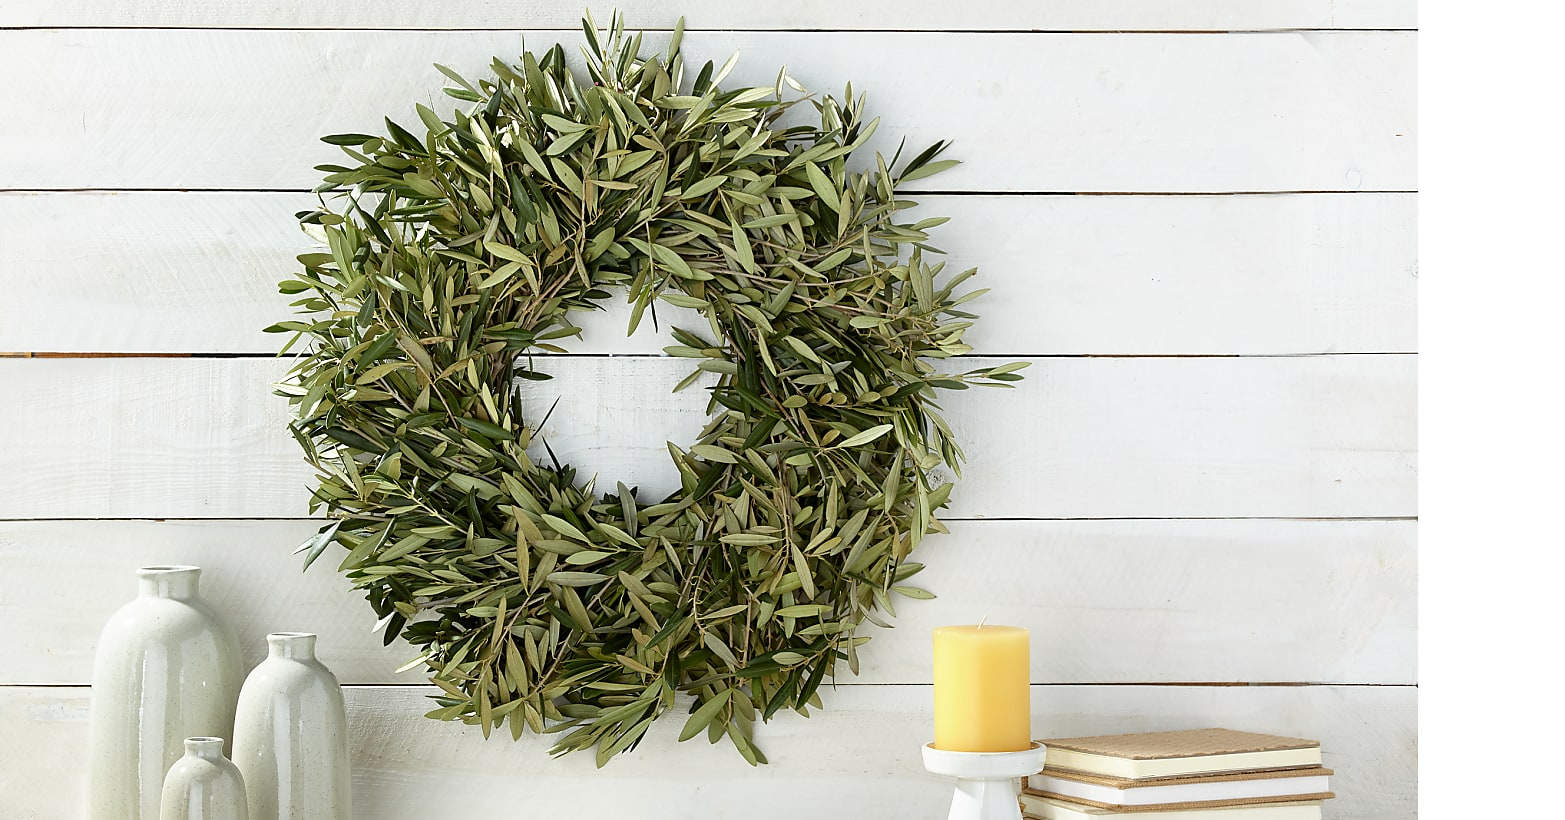 The Welcome Home Olive Wreath